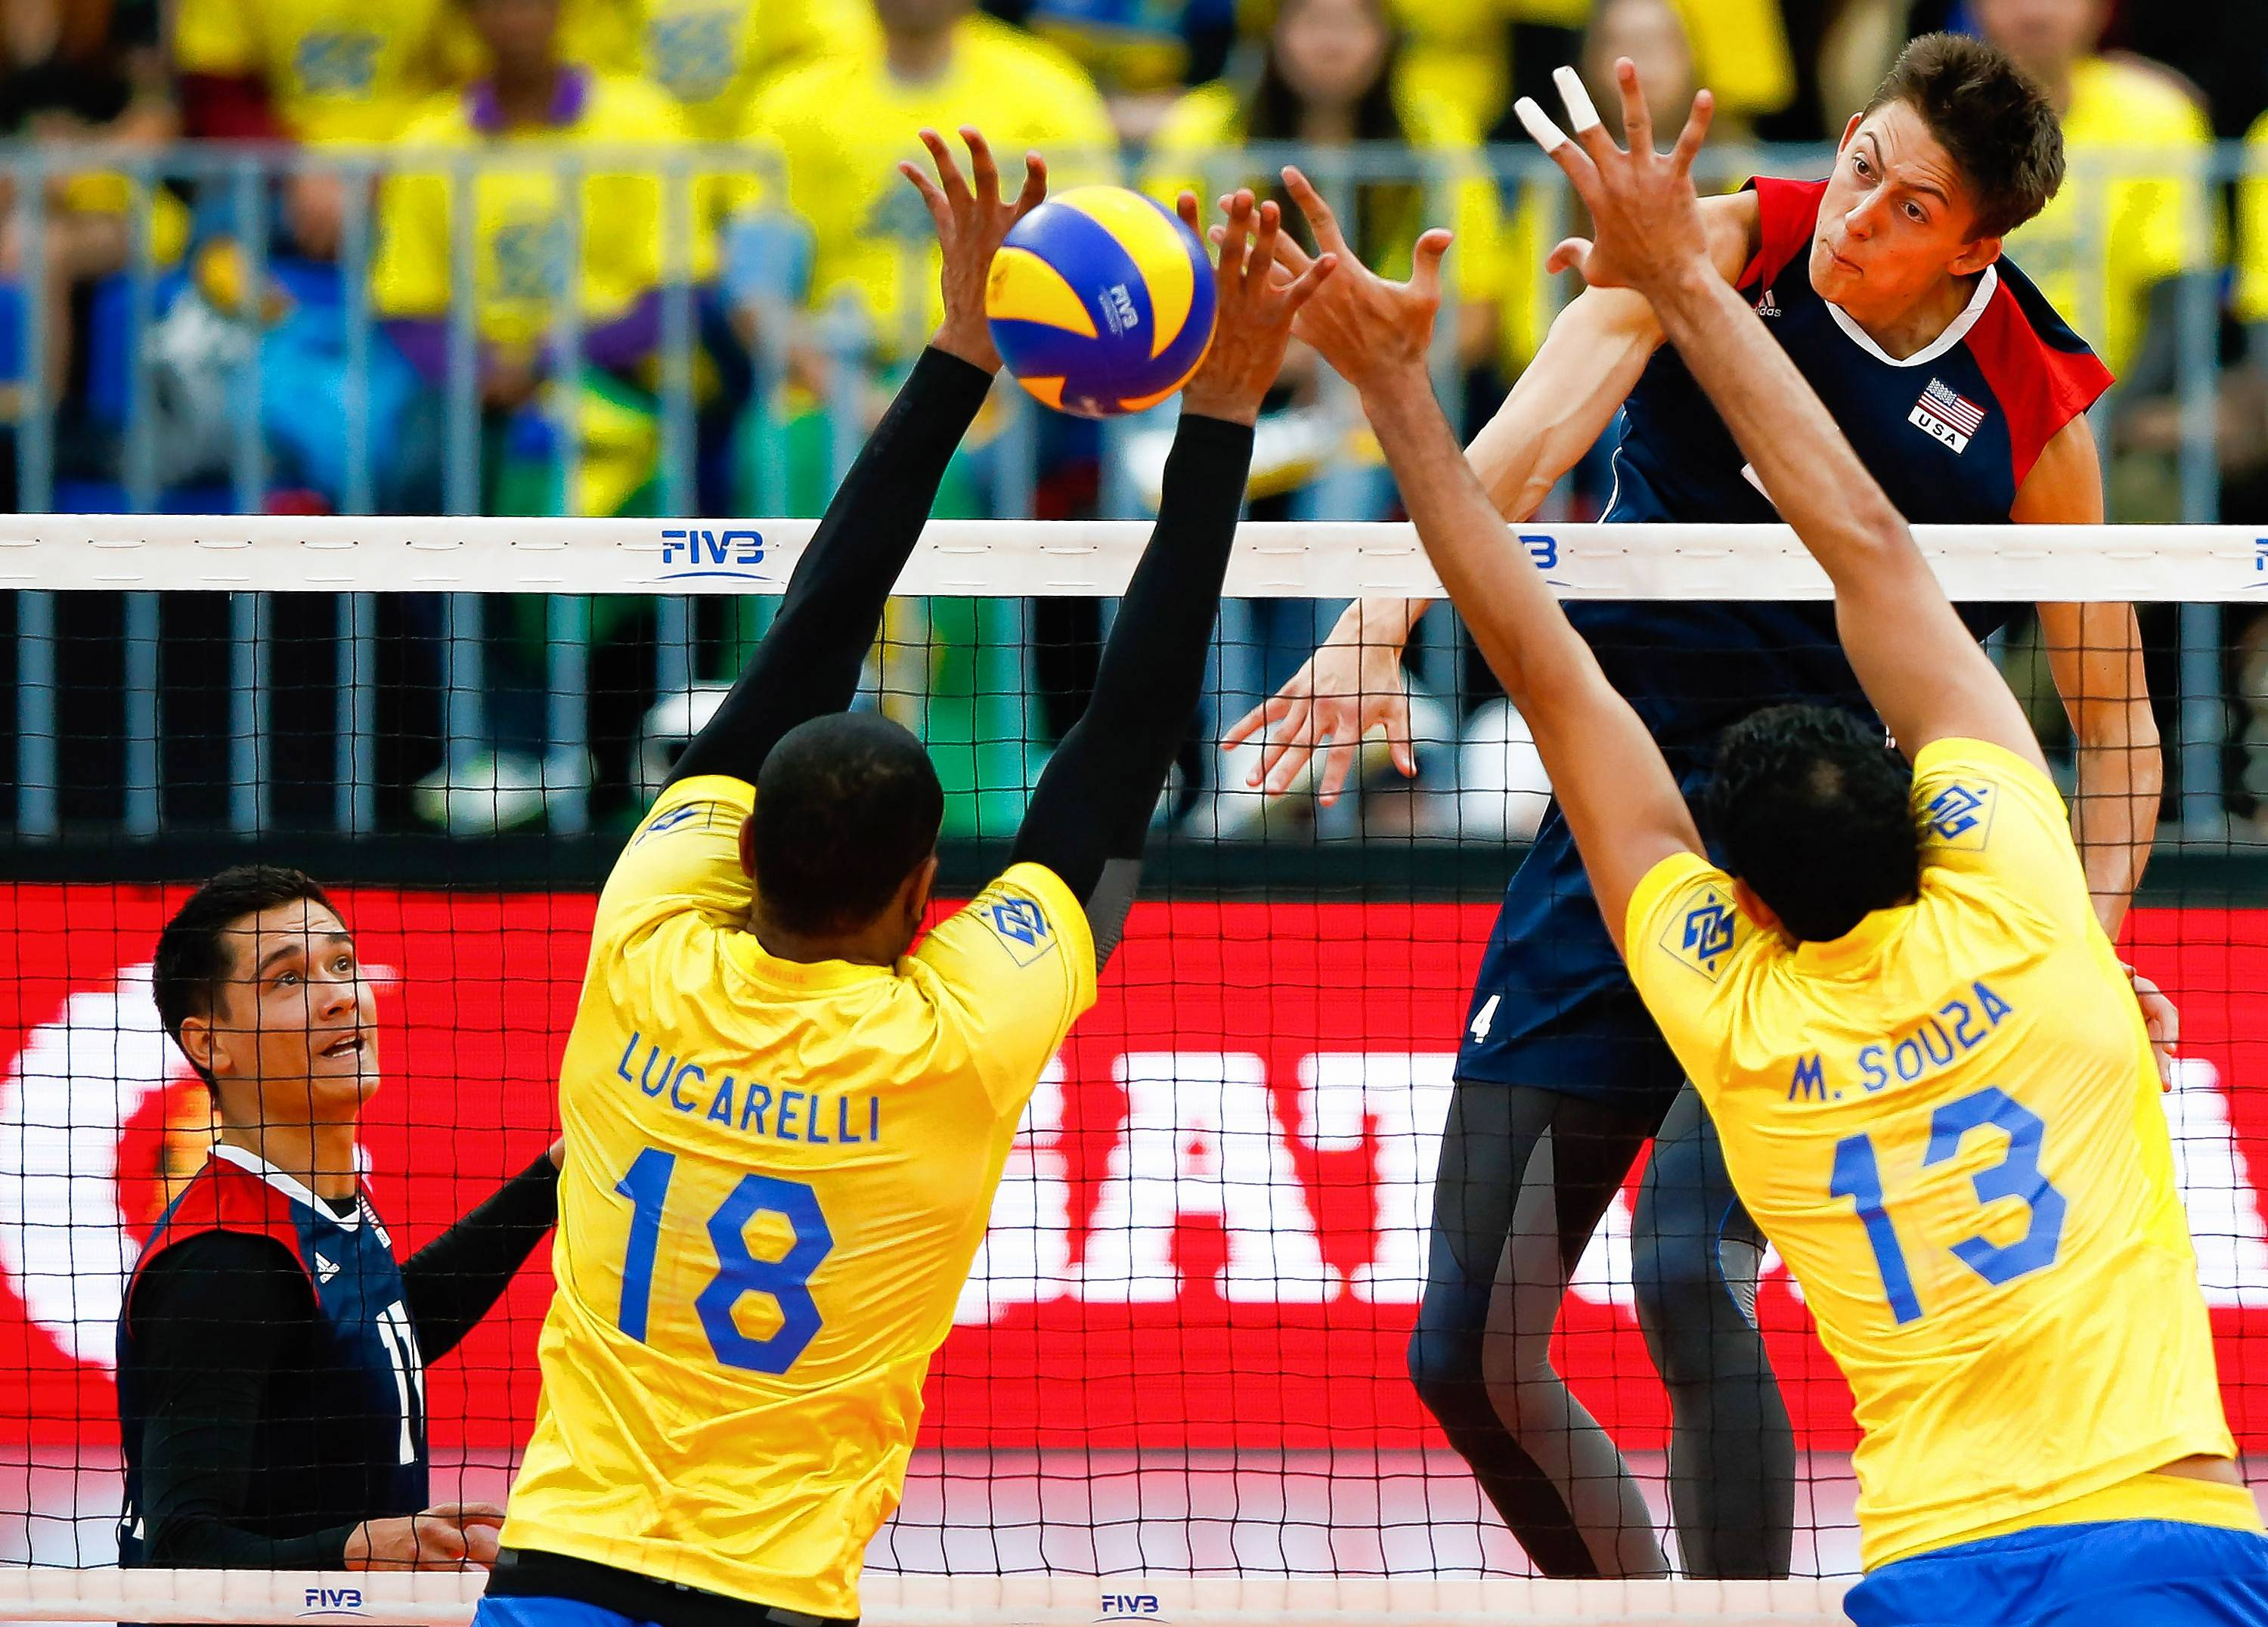 Jeffrey Jendryk, a 6-foot-10 middle blocker from Wheaton for Team USA, spikes against Brazil in a July match.